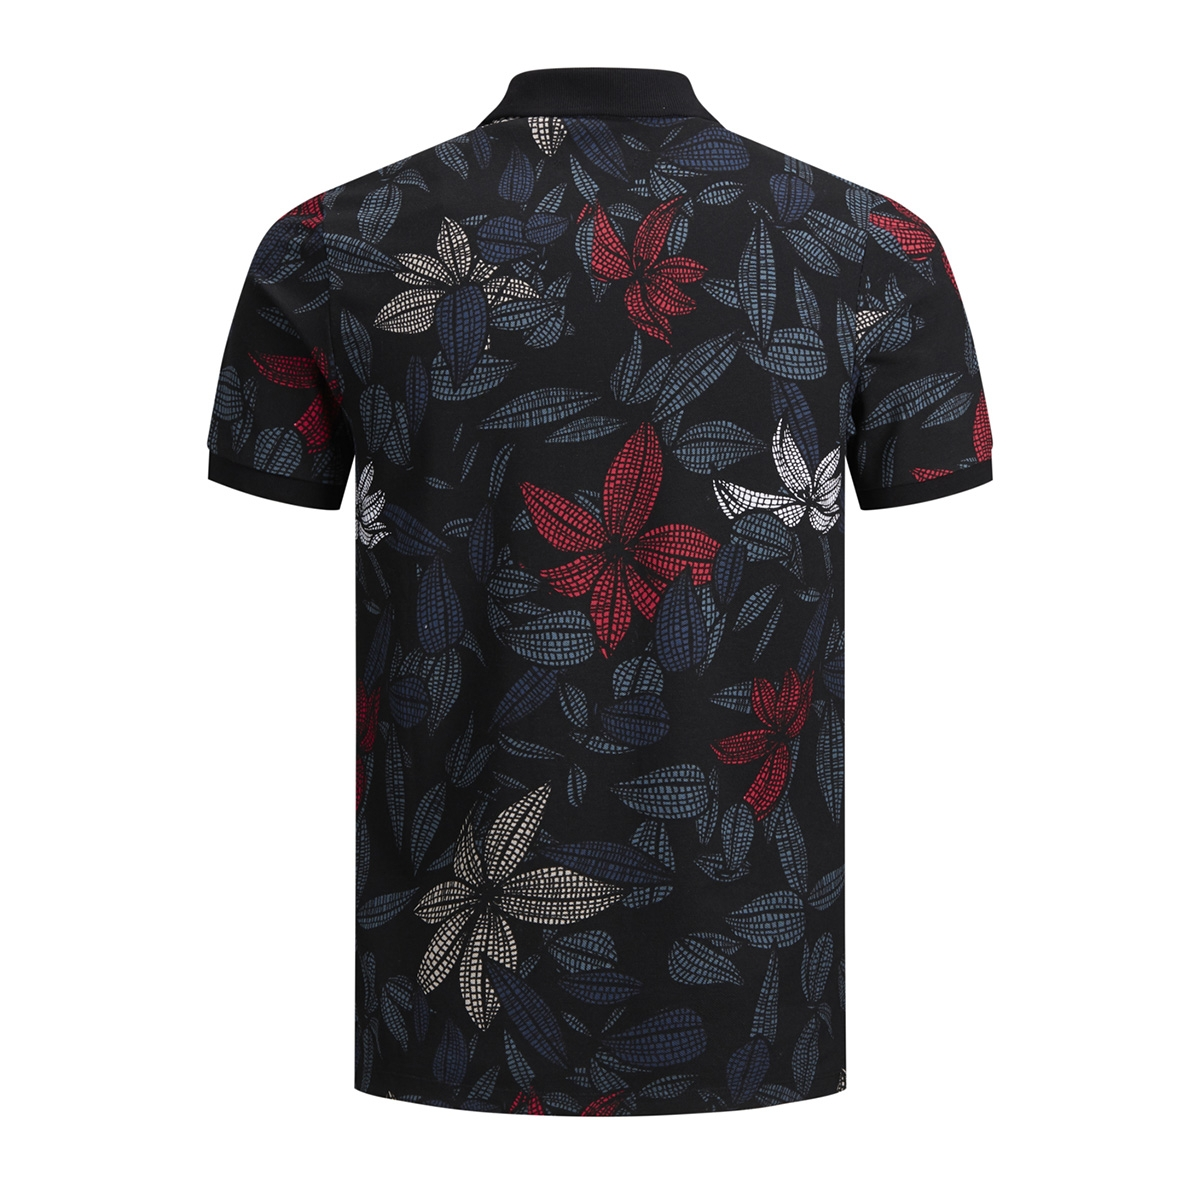 pktgms blooming aop polo ss 12149543 produkt polo true red